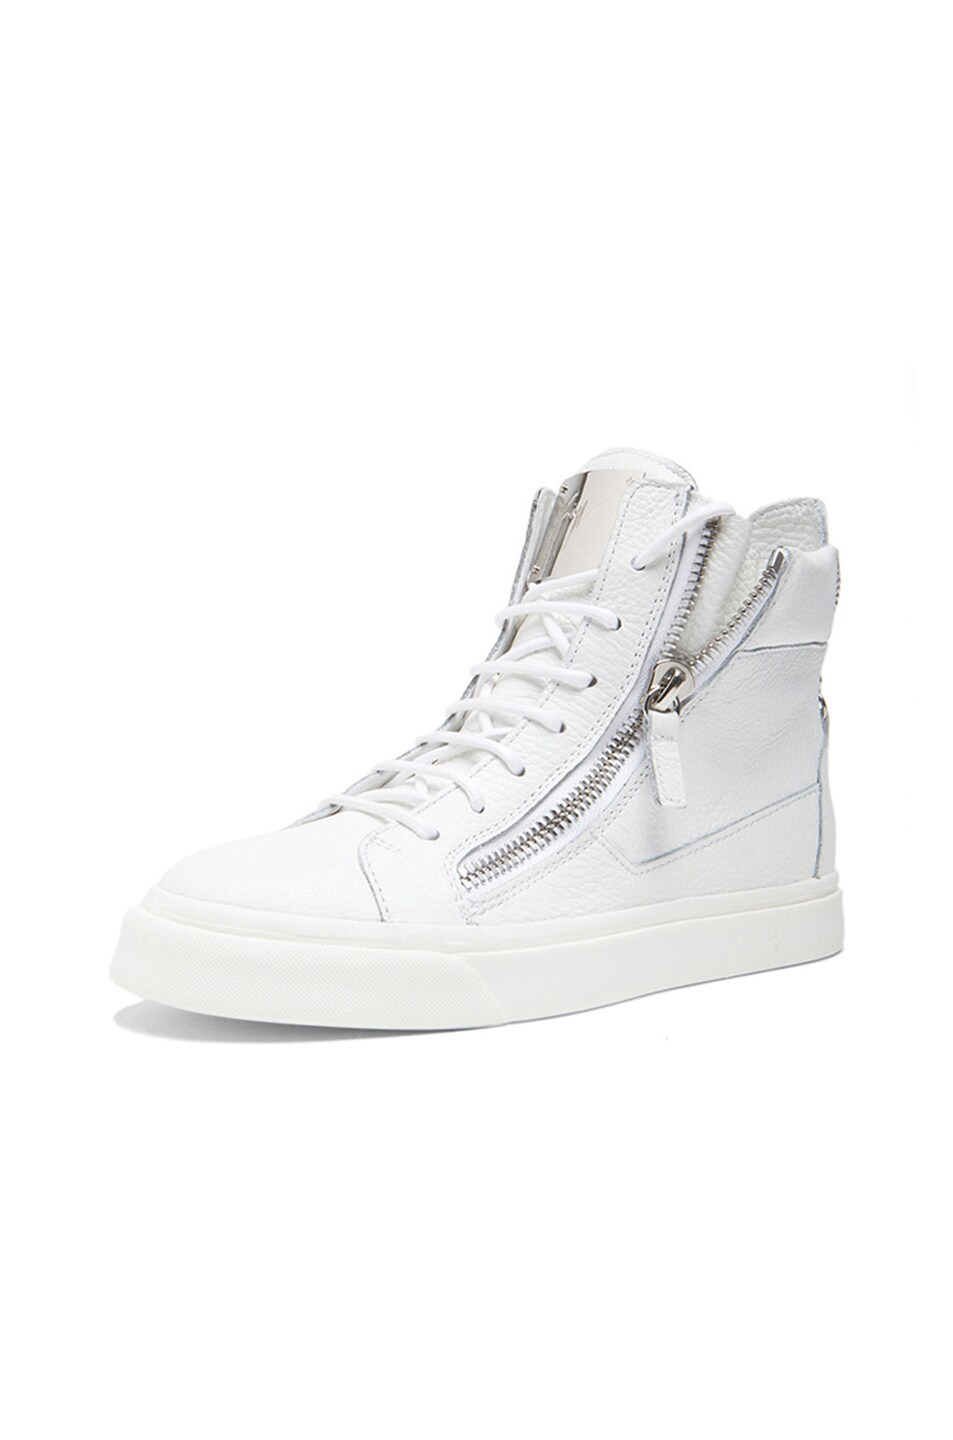 Image 2 of Giuseppe Zanotti Lindos Leather Sneakers in White